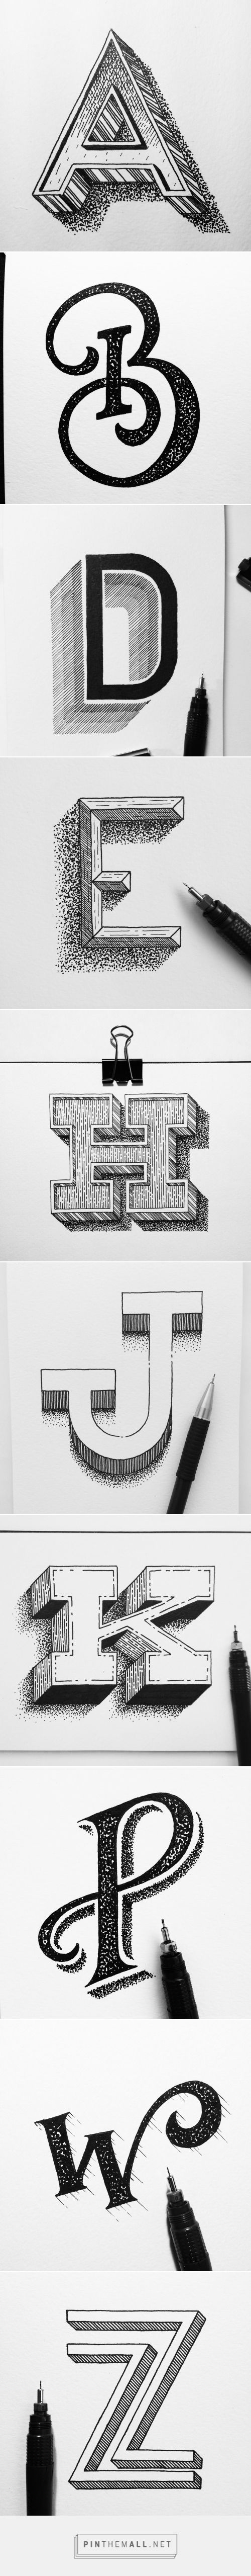 Hand Made Letters by Memo Vigil